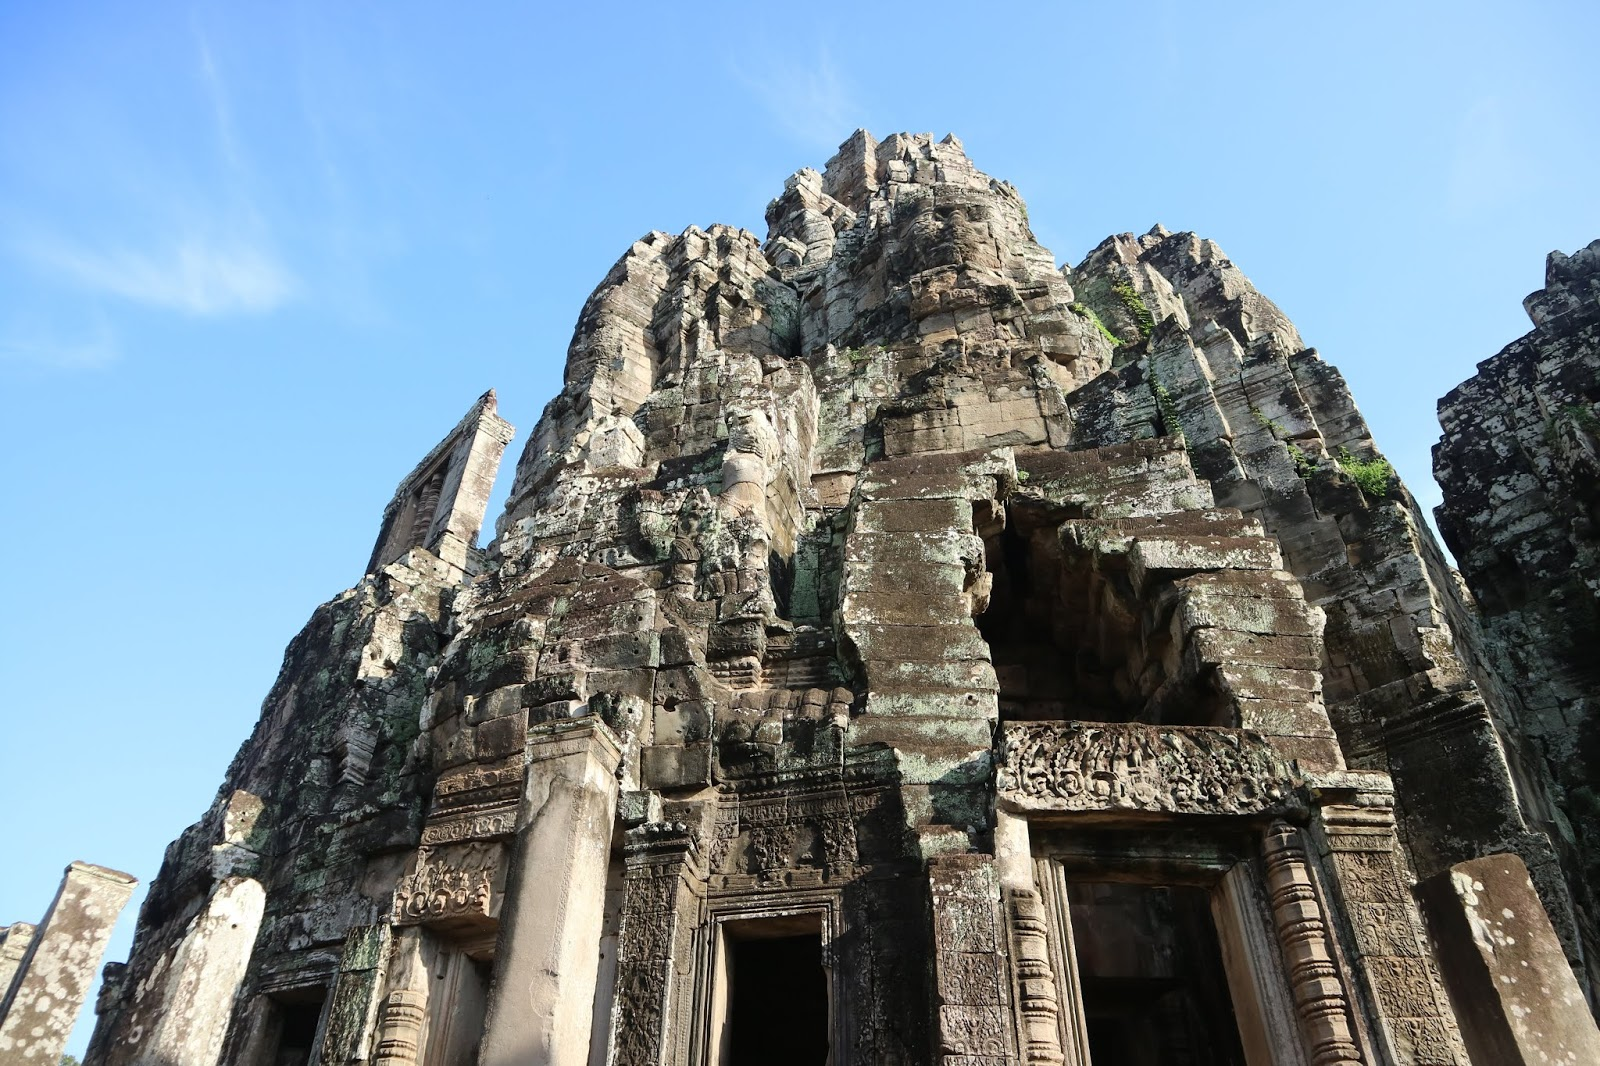 One of the towers of Bayon Temple